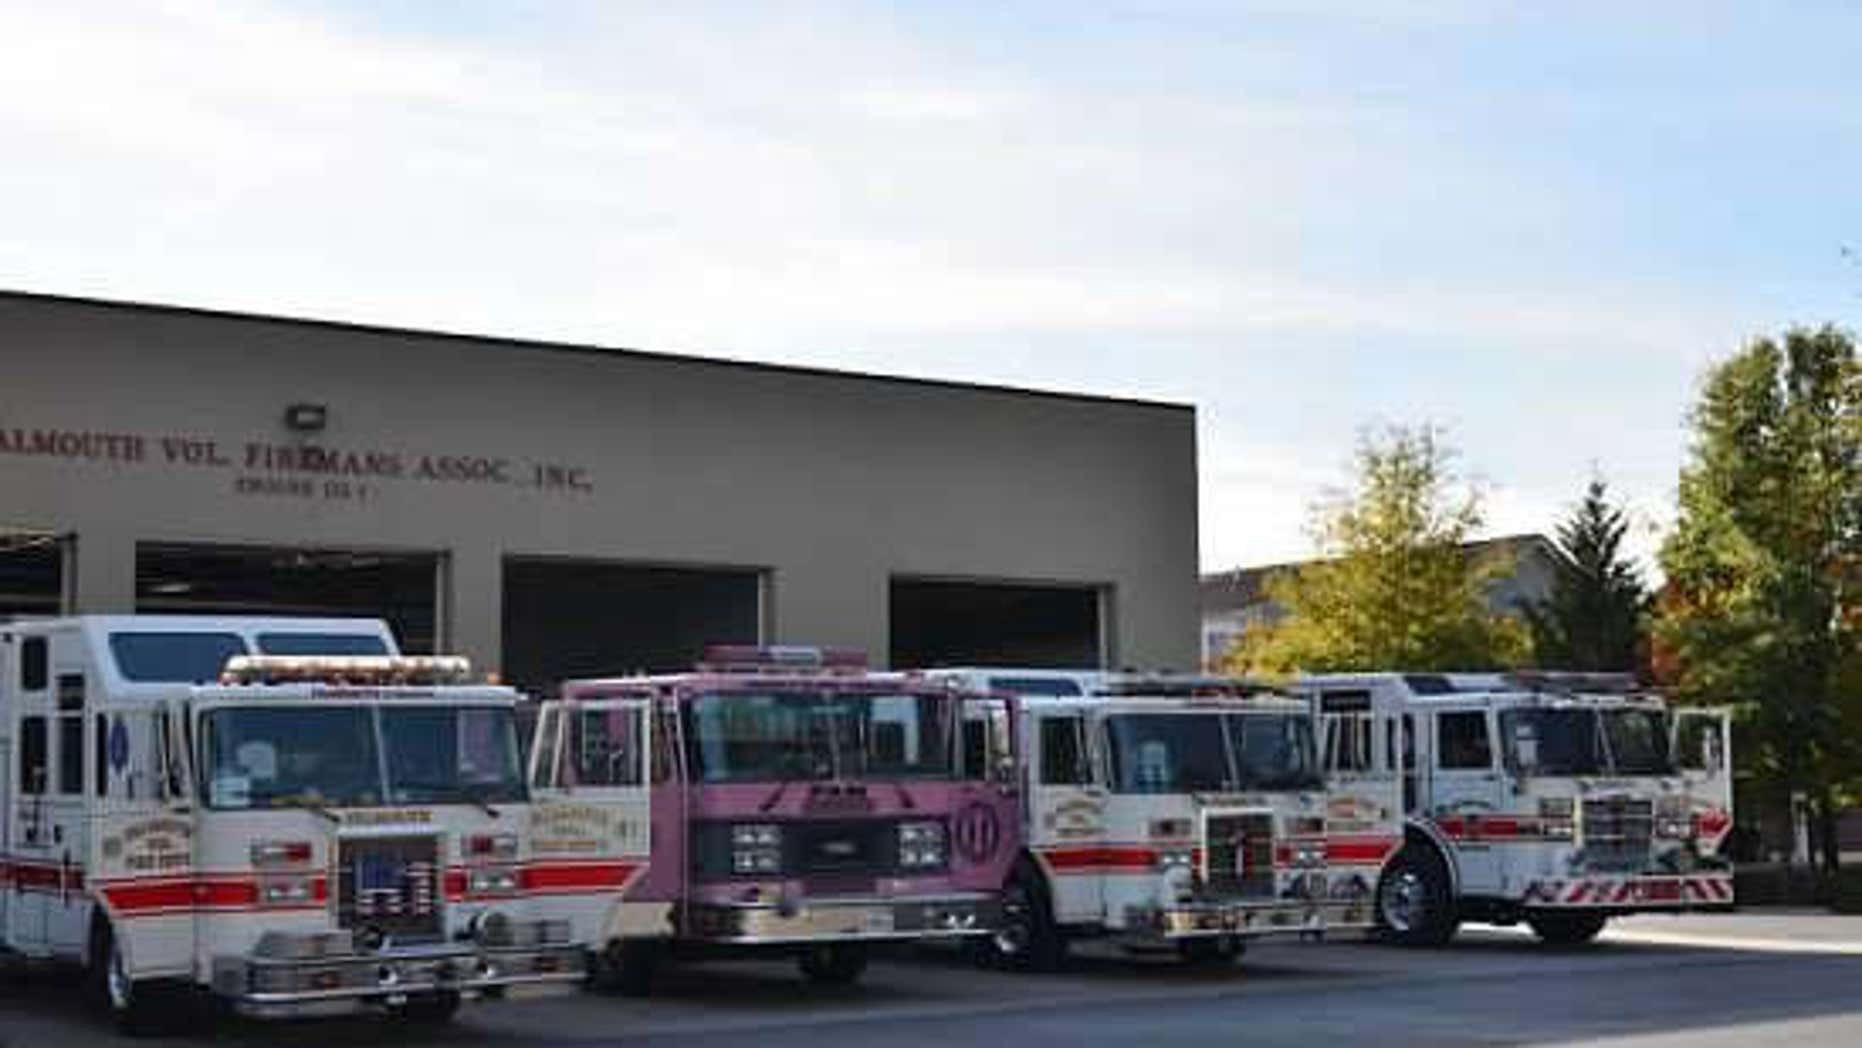 Falmouth Volunteer Fire Department fire engines on display.